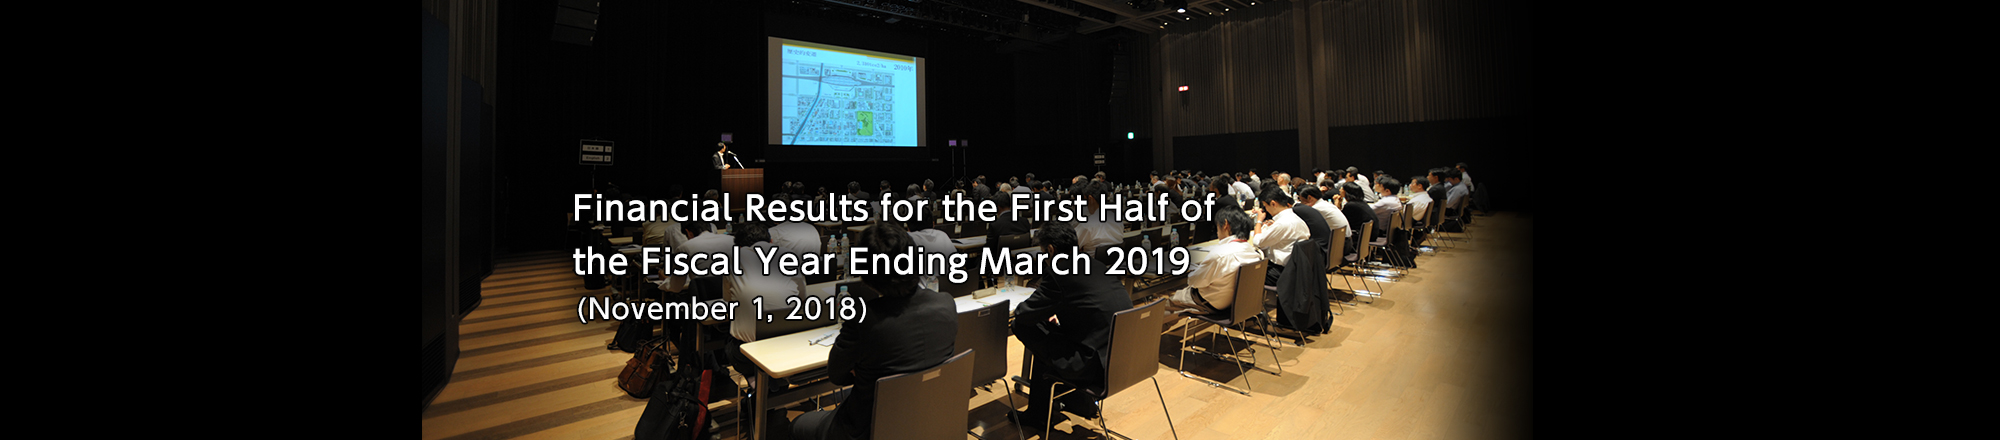 Financial Results for the First Half of the Fiscal Year Ending March 2019 (November 1 ,2018)